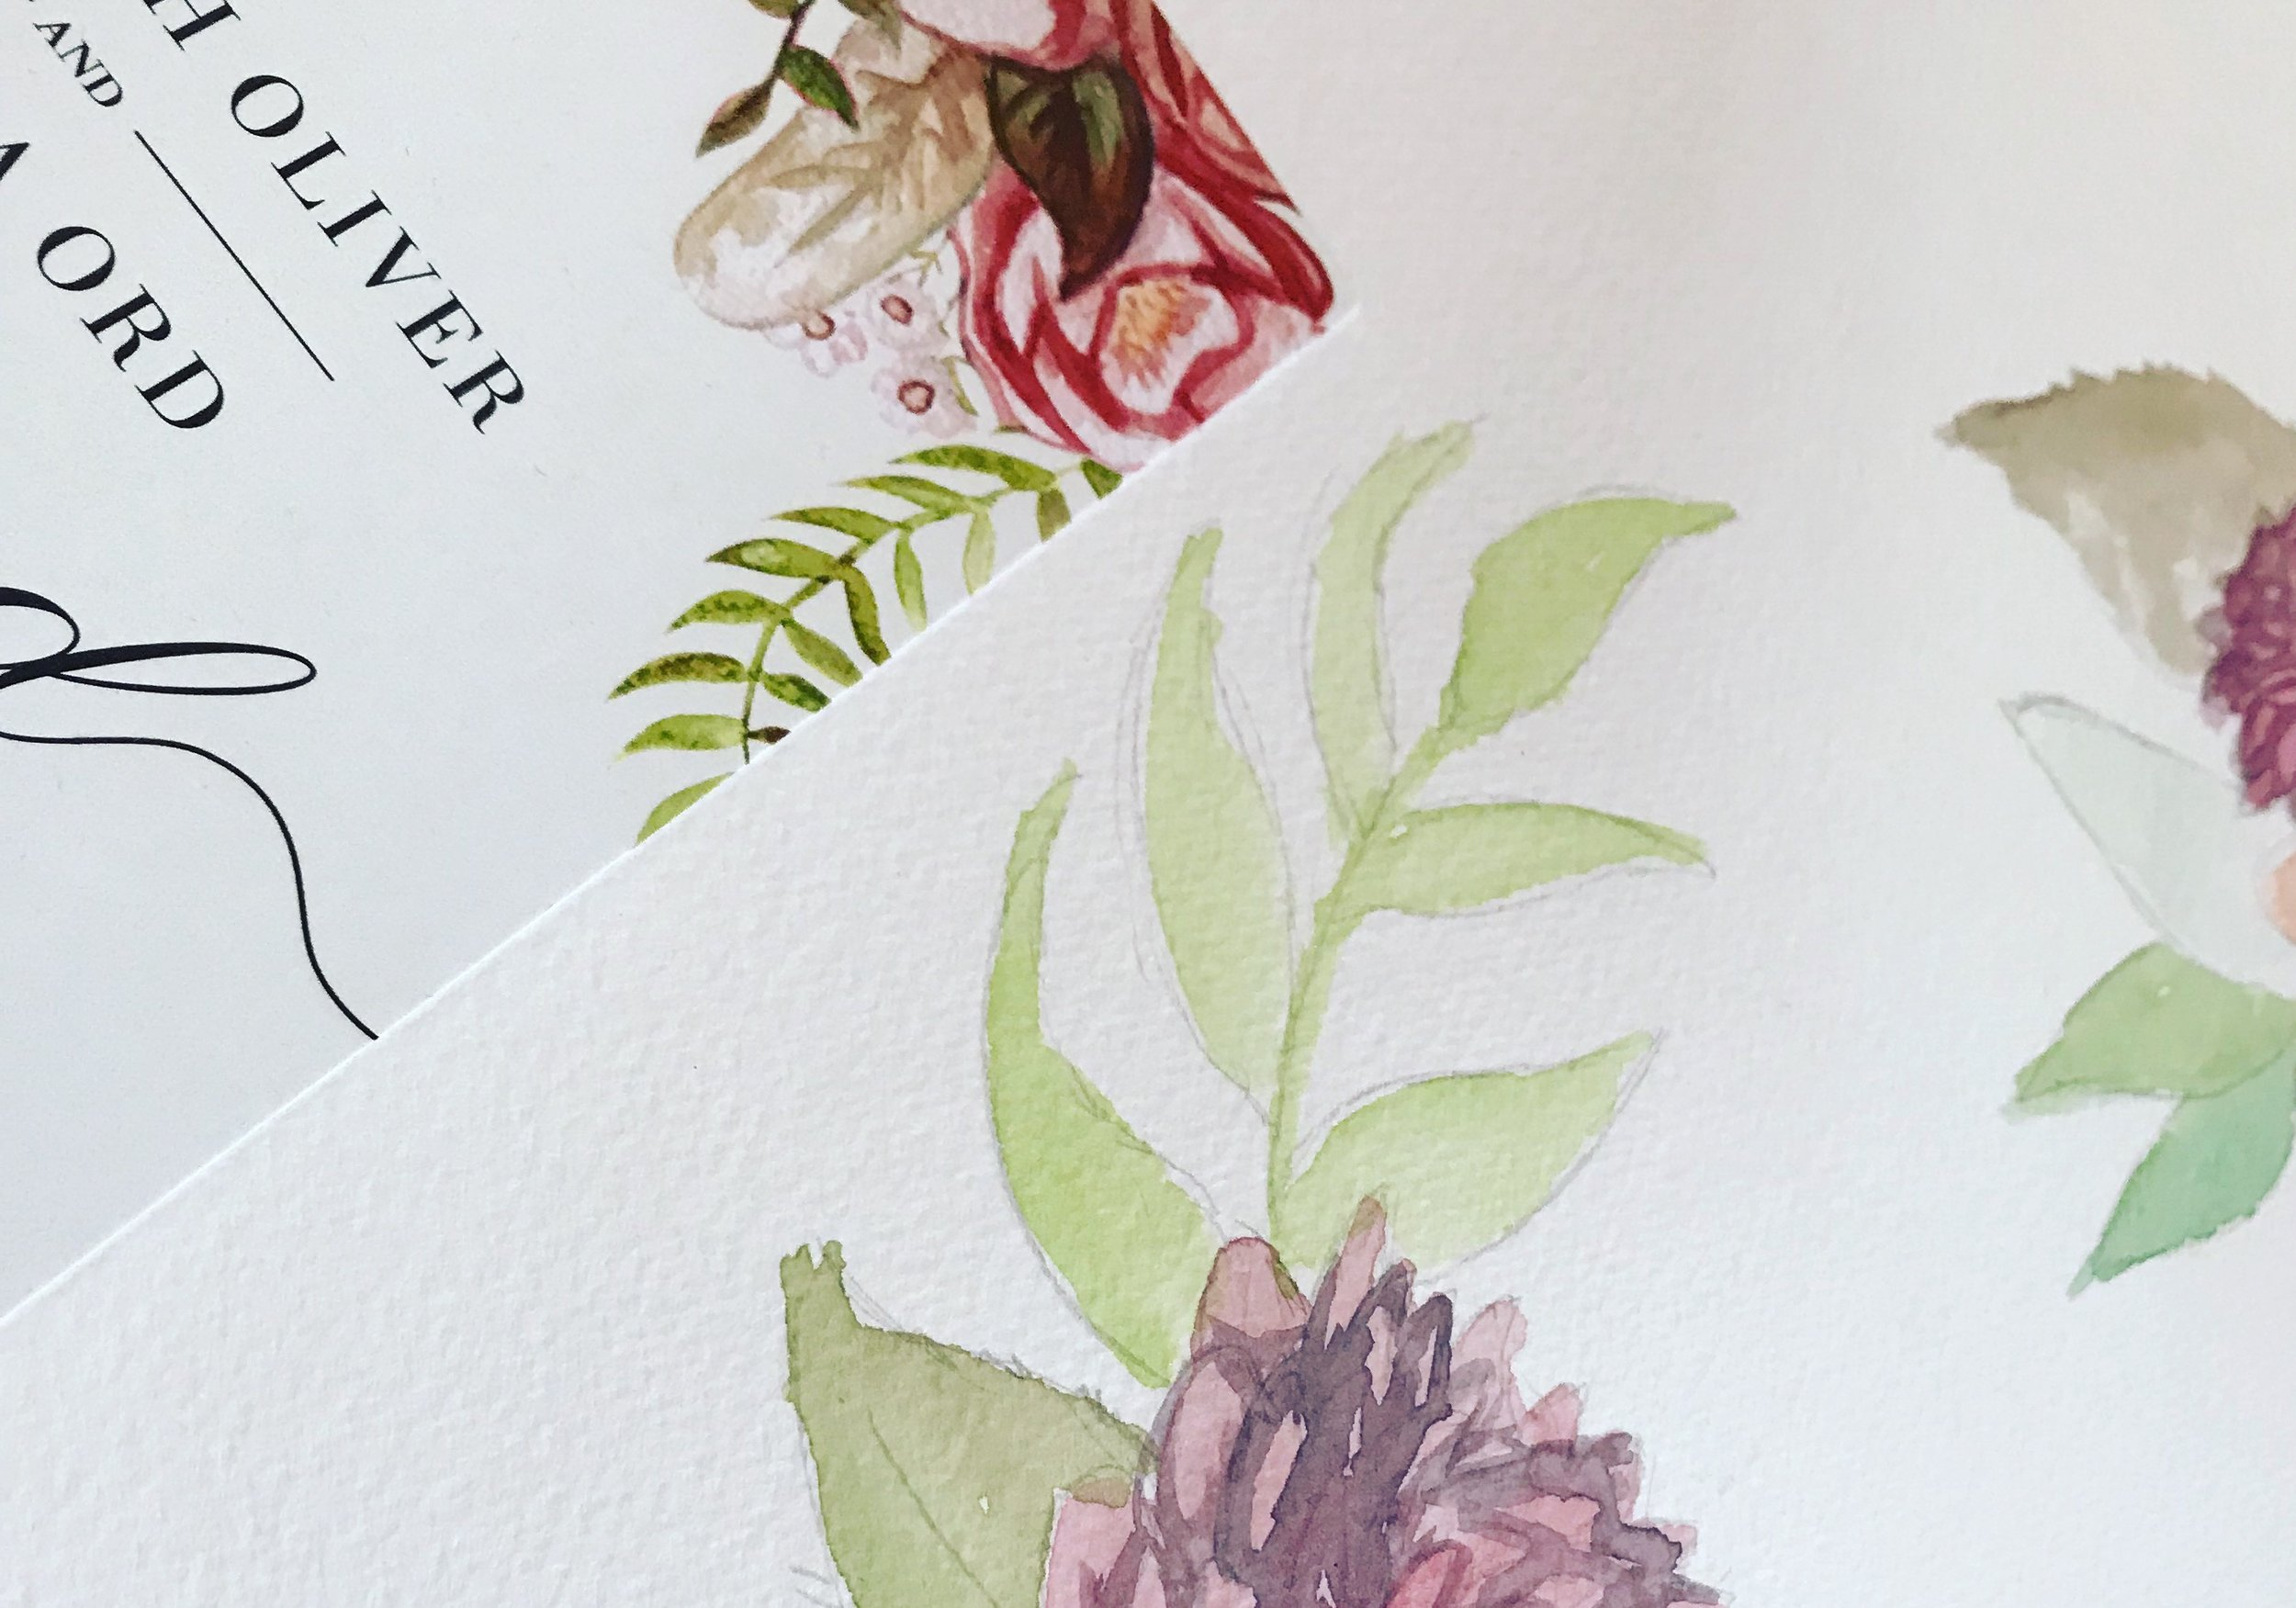 I like to add the personal touch with hand crafted illustrations in all my wedding invite designs